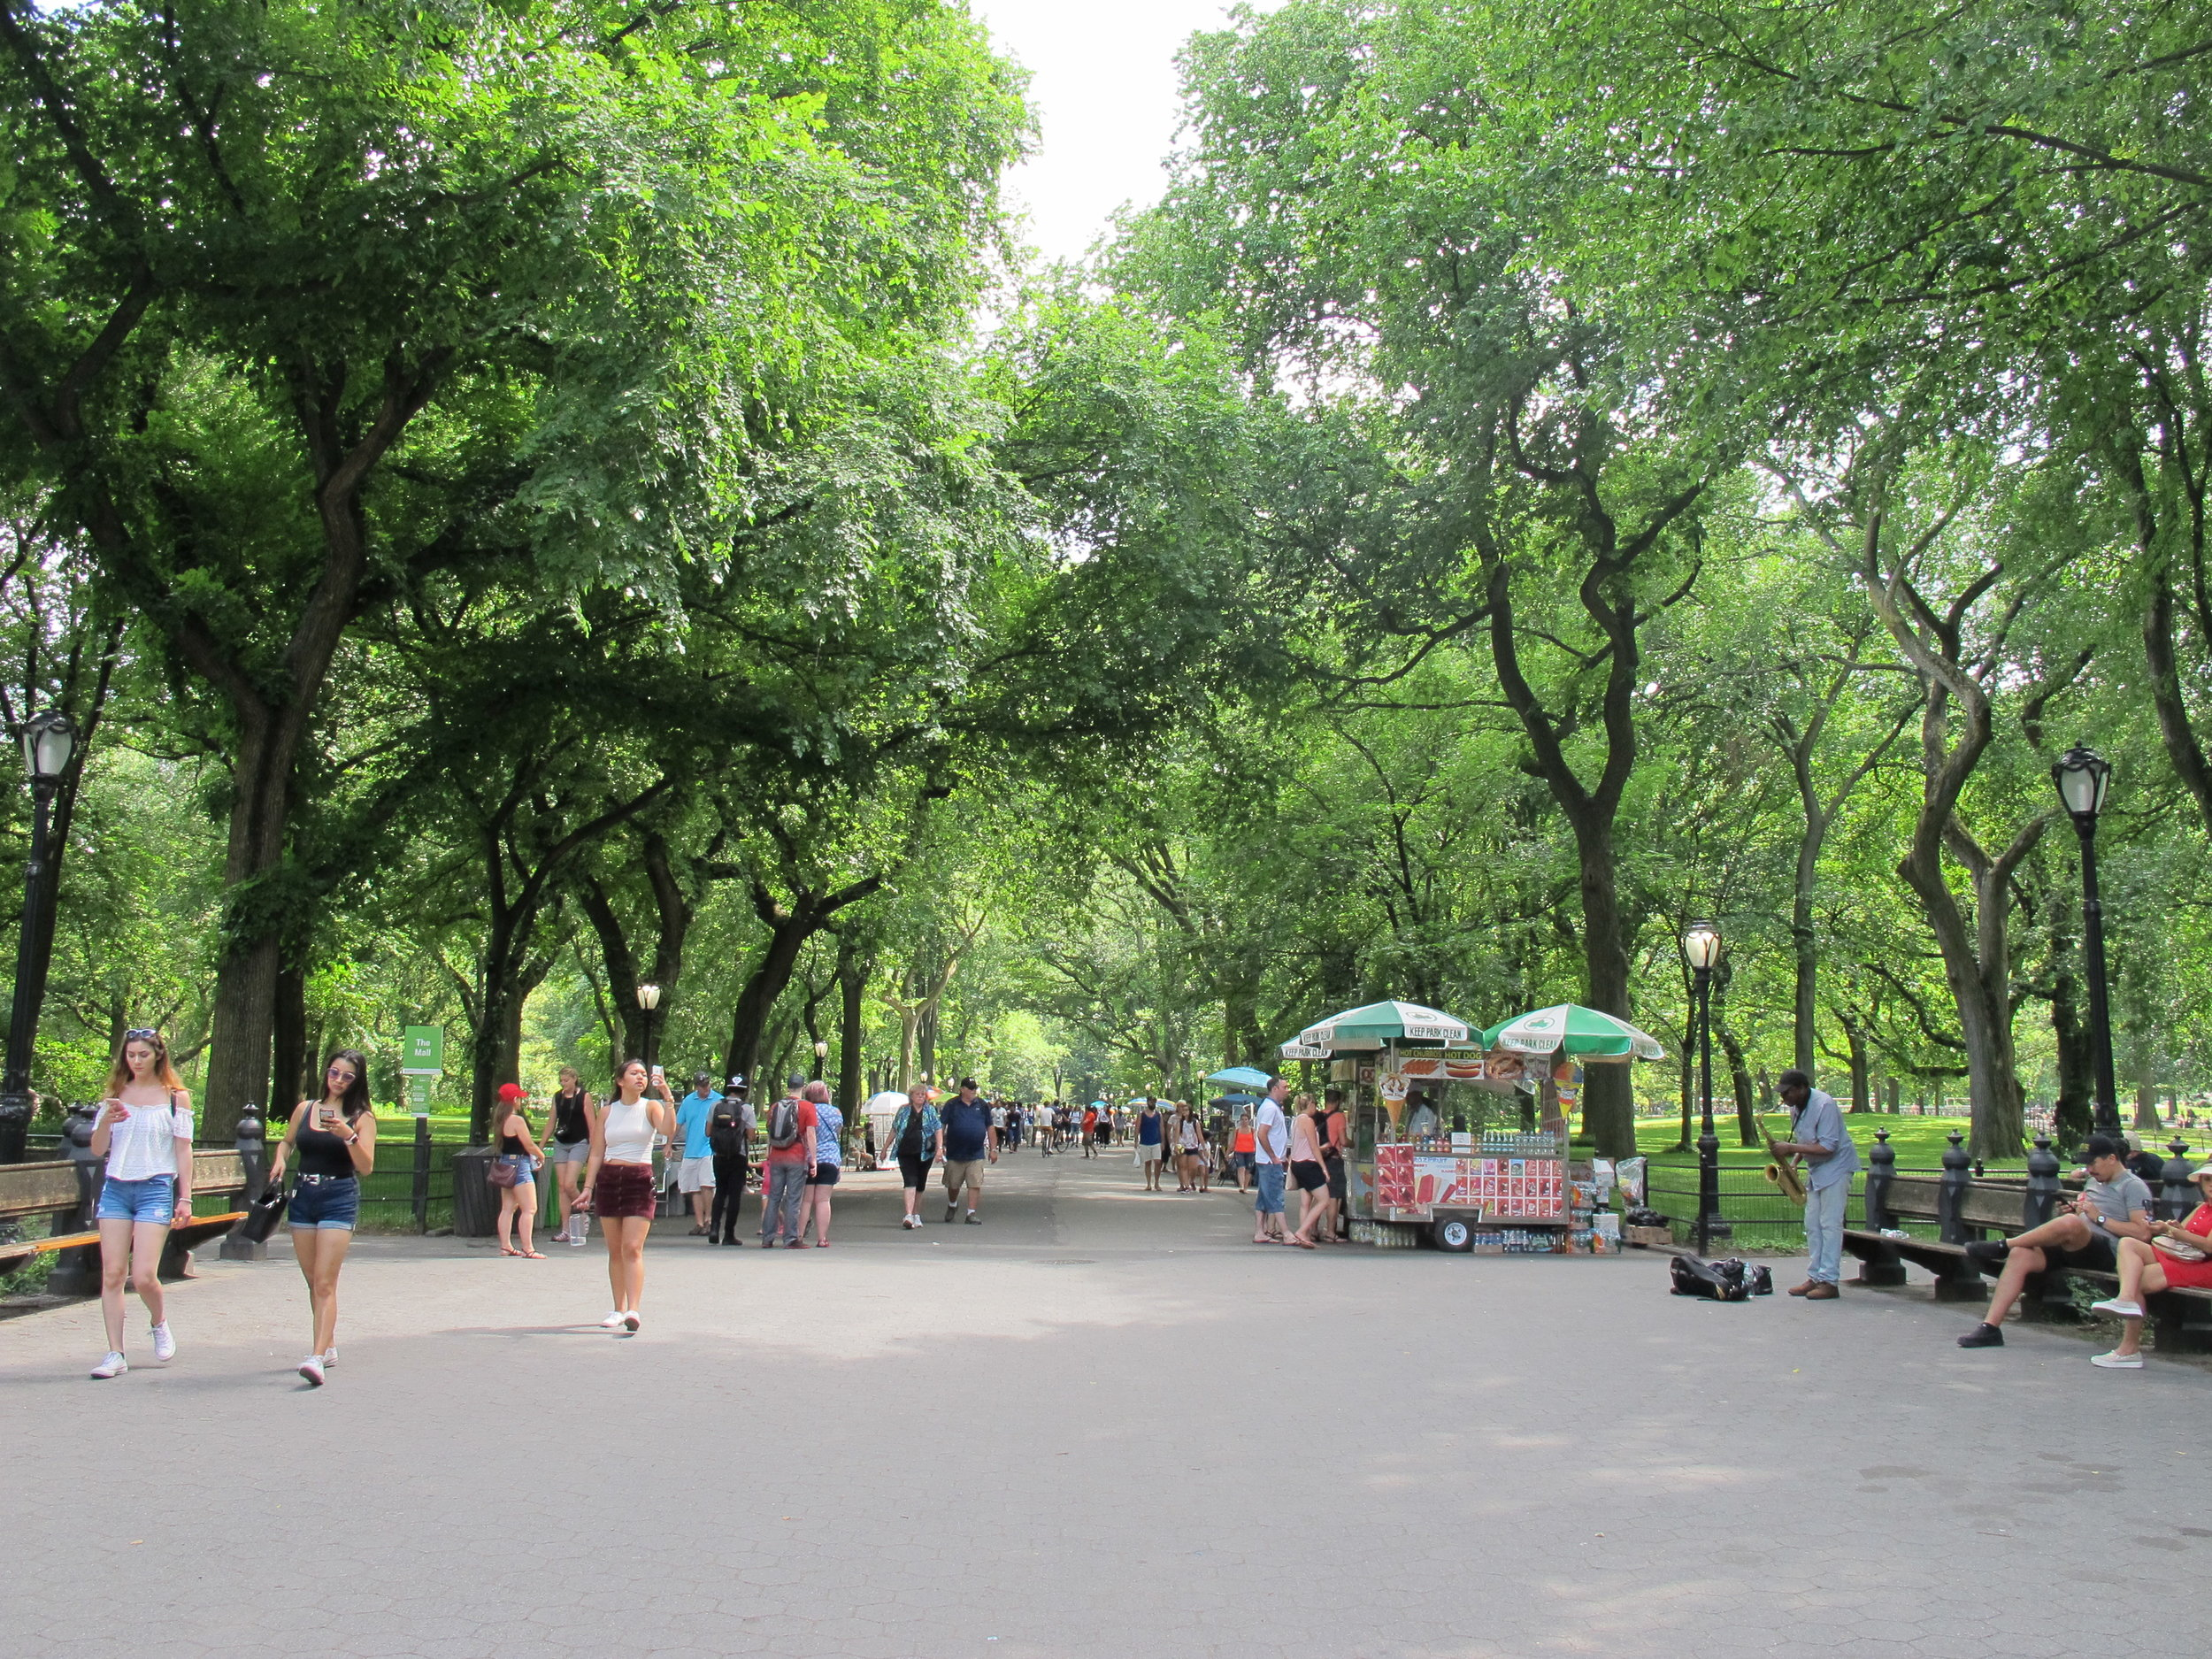 The Mall and Literary Walk in Central Park